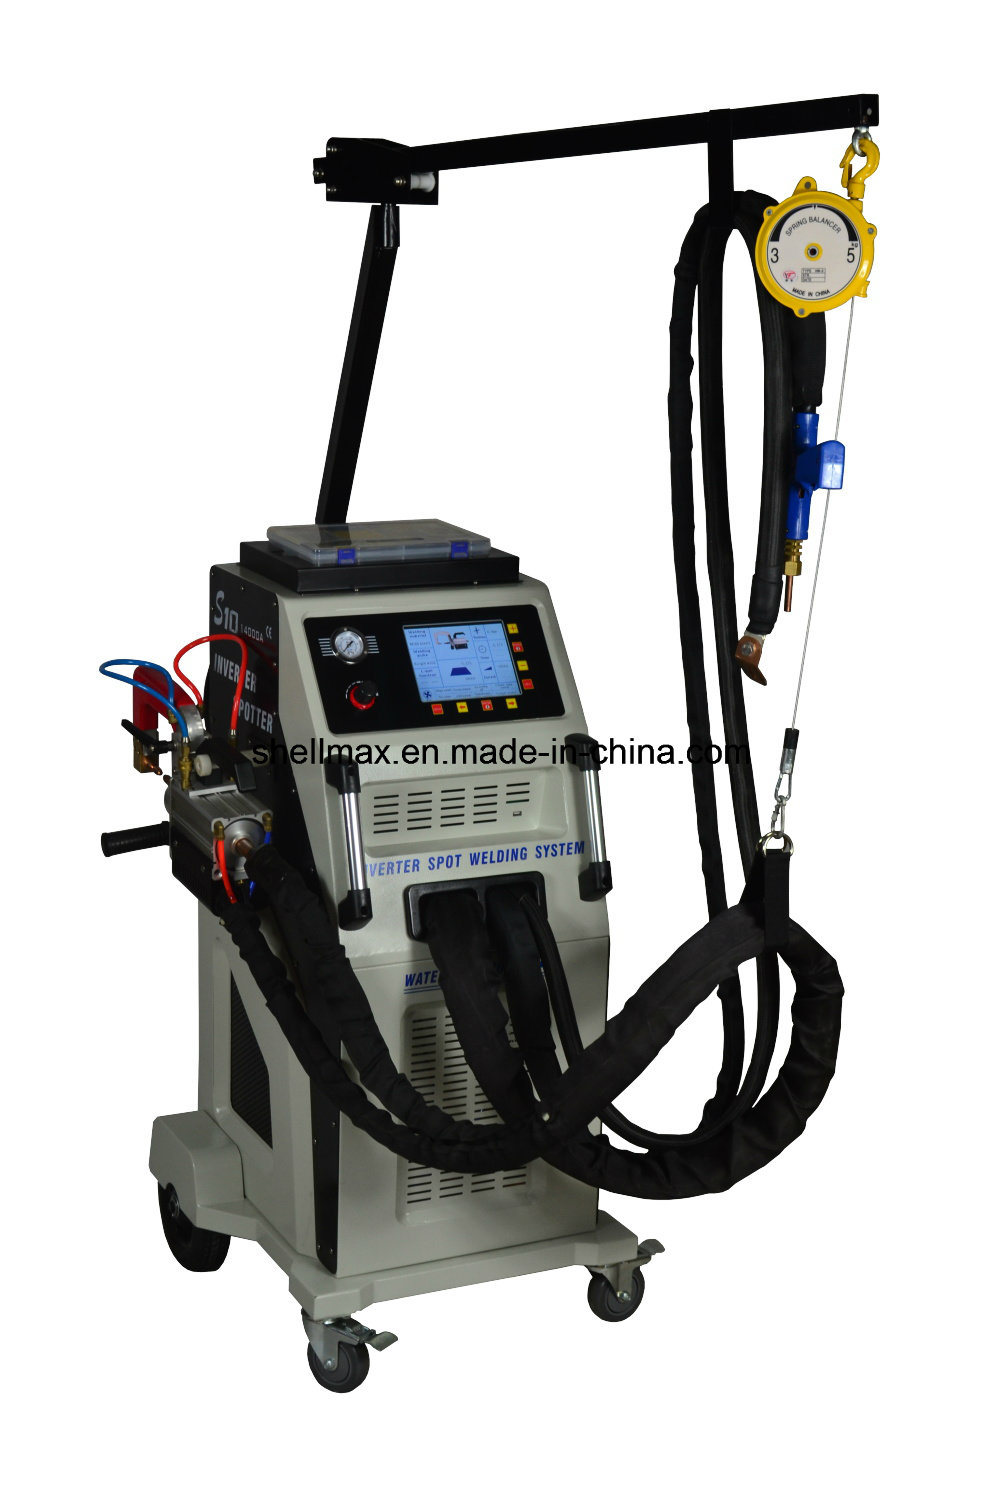 14000A Inverter IGBT Spot Welding Machine for Auto Repair with Cl Gun